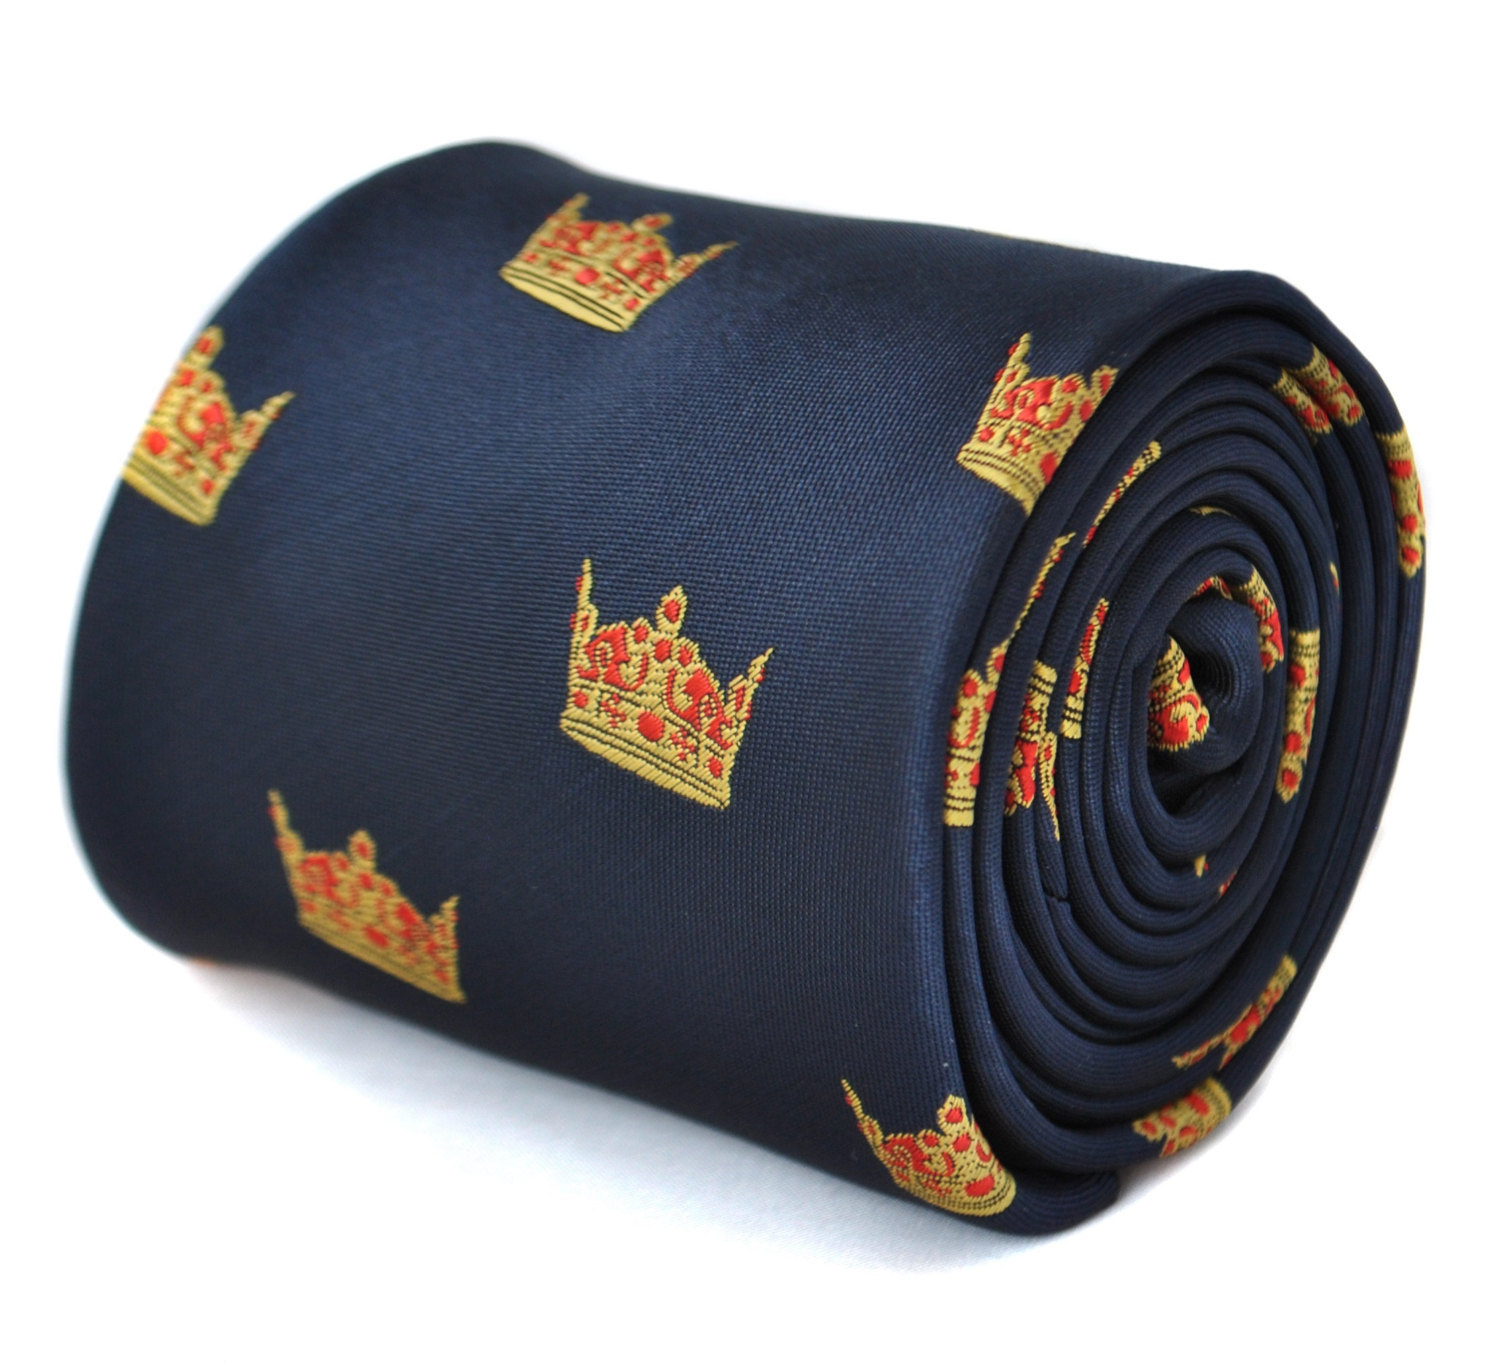 navy tie with crown design by Frederick Thomas FT1877